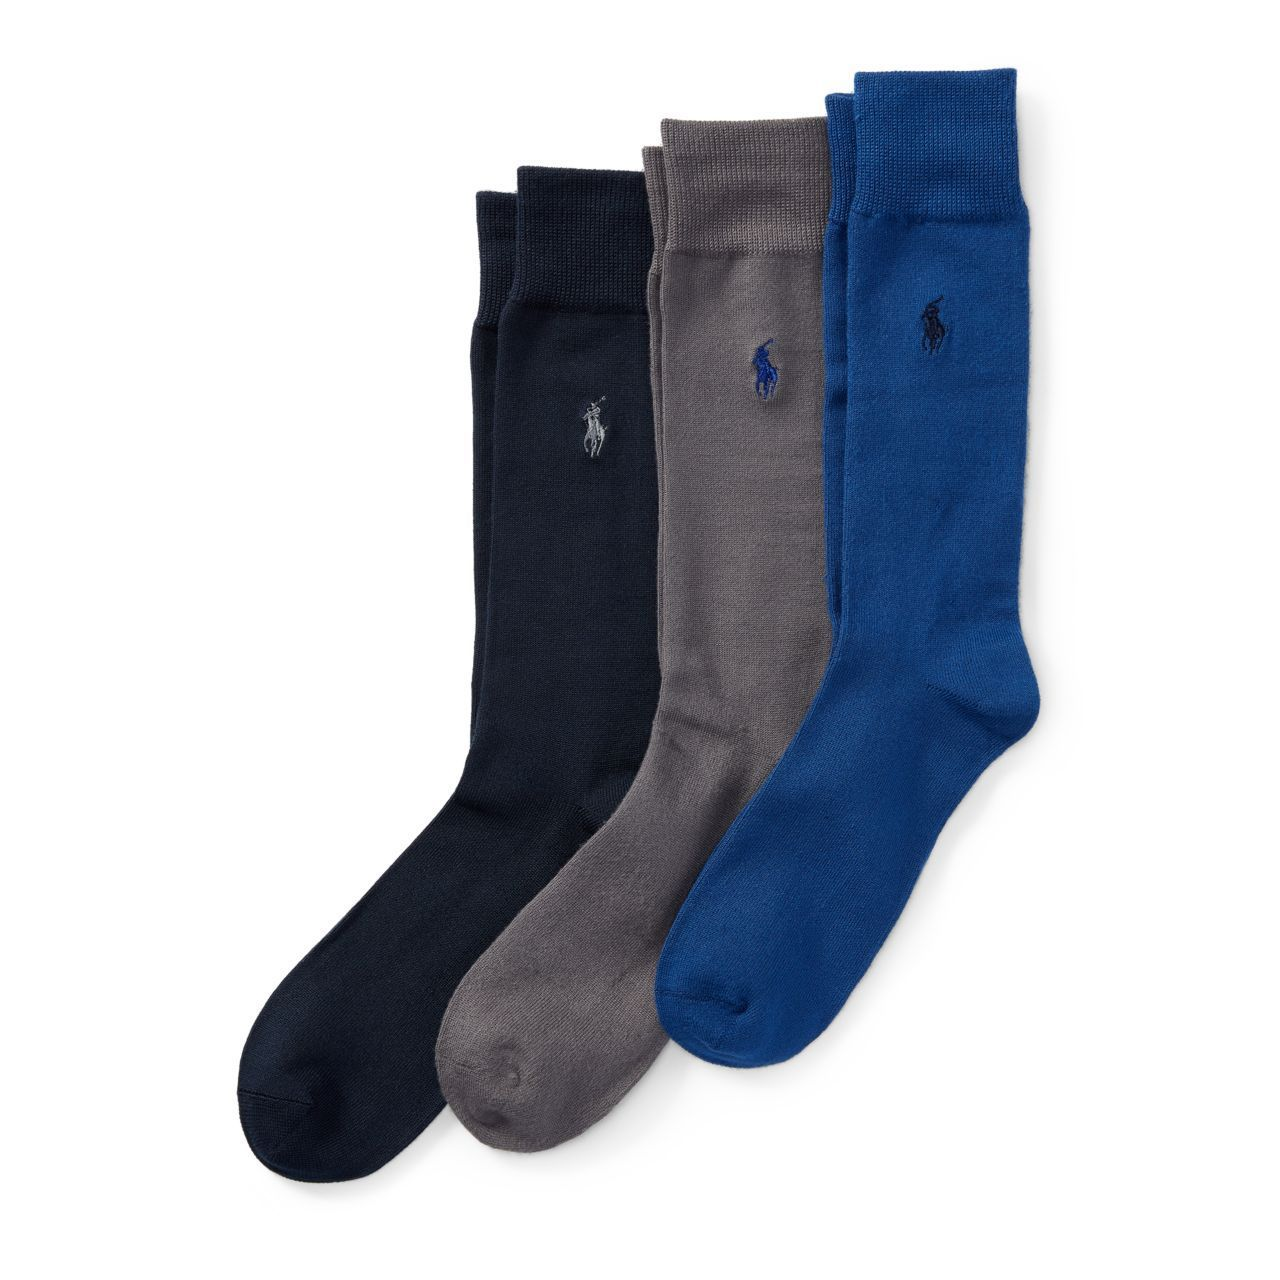 ◎送料込み◎Flat-Knit Trouser Sock 3-Pack